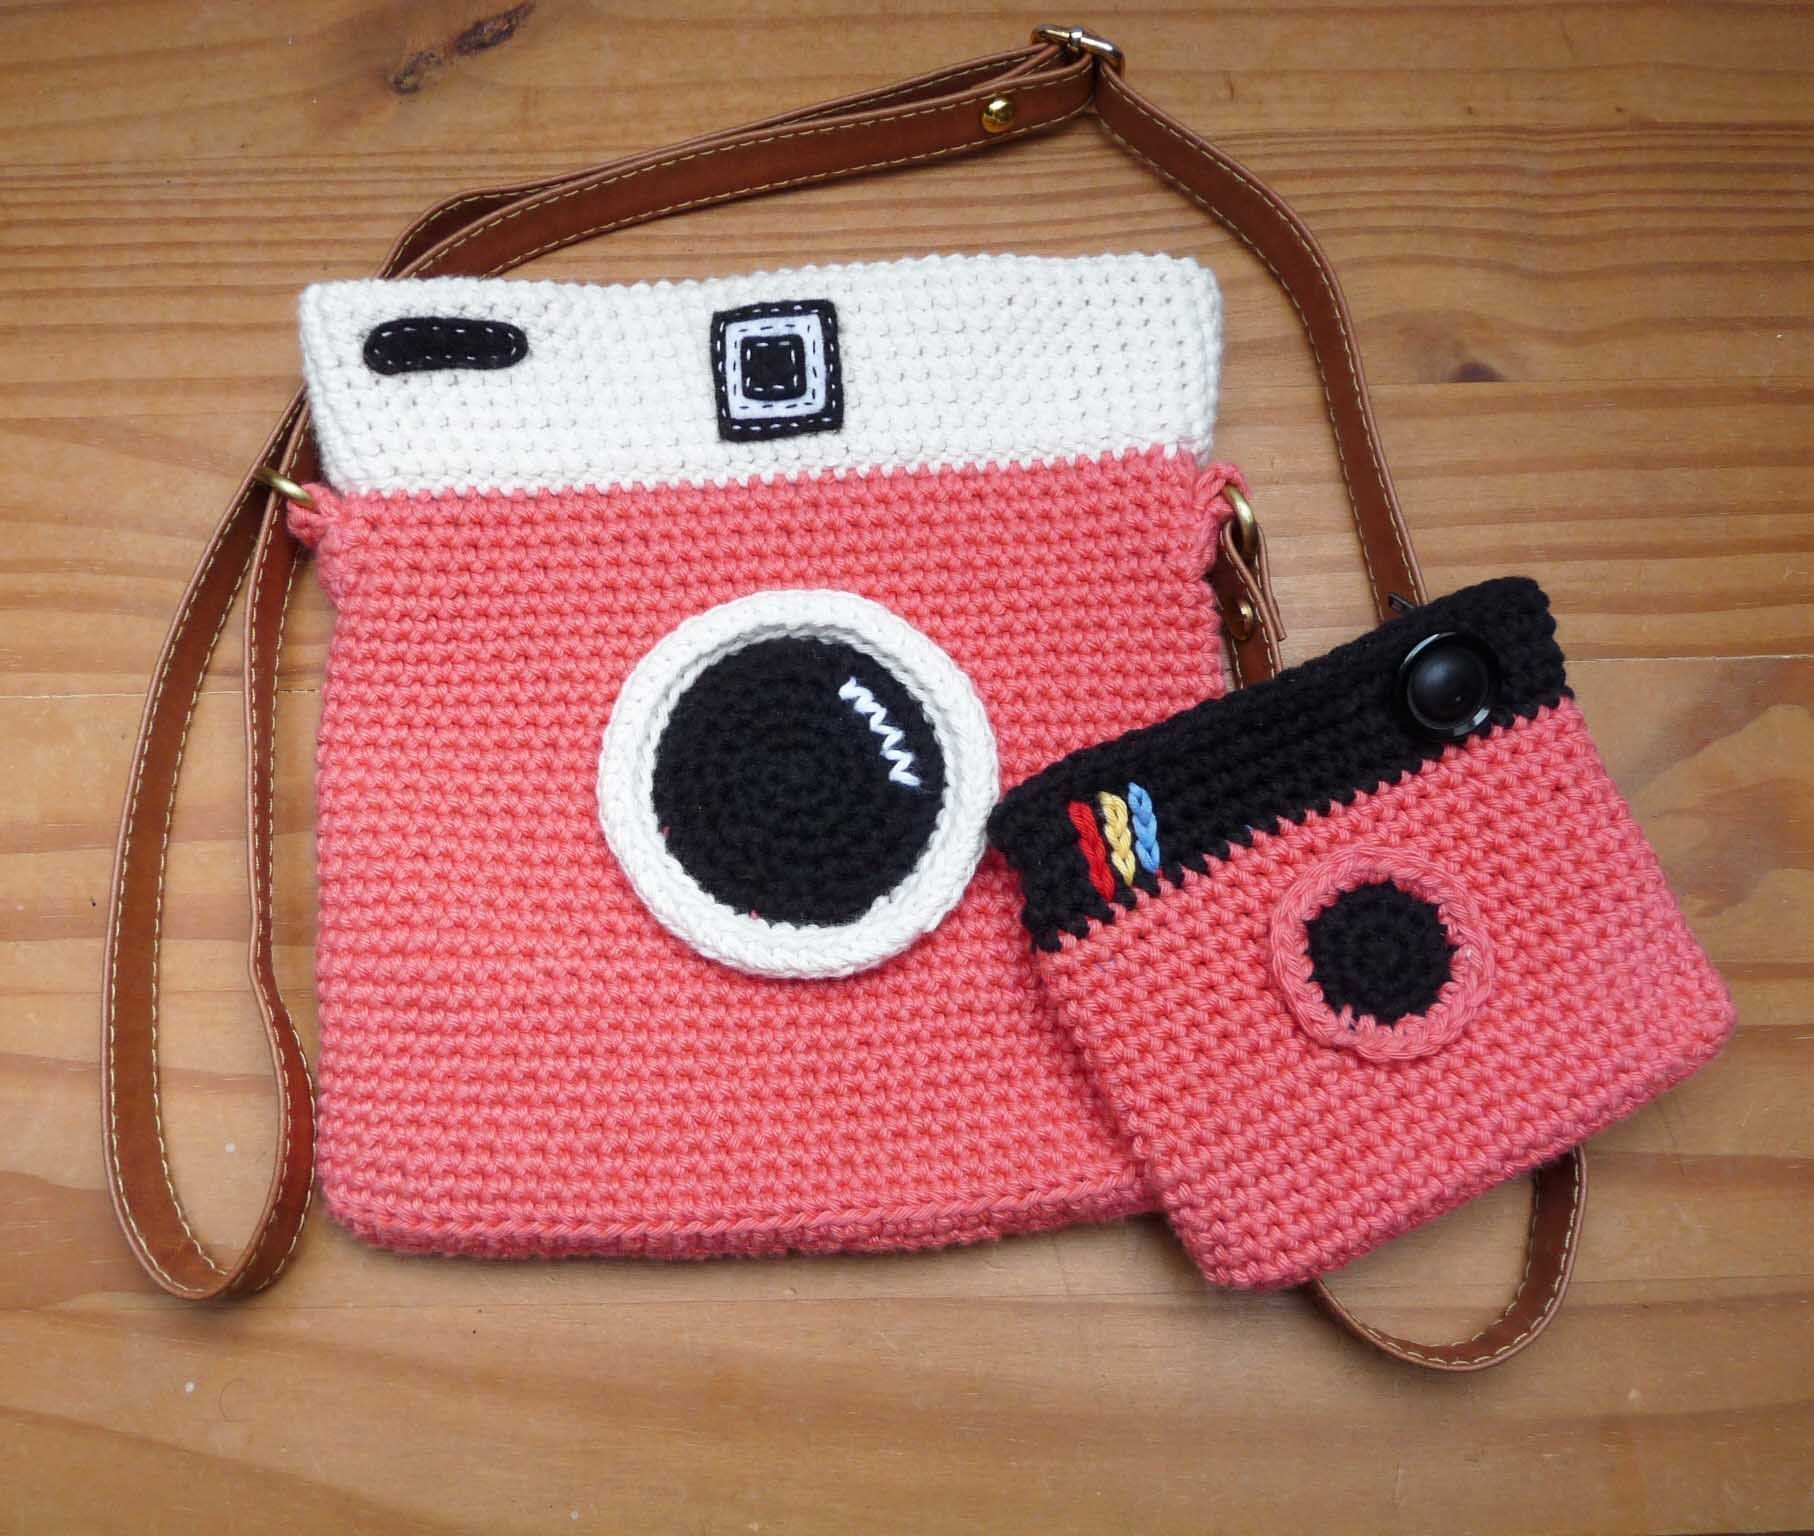 Cute crocheted camera-style crossbody bag with coin/card purse, lined with inside zip pocket, 7 1/2 x 8 (19 x 20cm), faux leather strap #crochetcamera Cute crocheted camera-style crossbody bag with coin/card purse, lined with inside zip pocket, 7 1/2 x 8 (19 x 20cm), faux leather strap by GrannyMadeaBag on Etsy #crochetcamera Cute crocheted camera-style crossbody bag with coin/card purse, lined with inside zip pocket, 7 1/2 x 8 (19 x 20cm), faux leather strap #crochetcamera Cute crocheted camera #crochetcamera